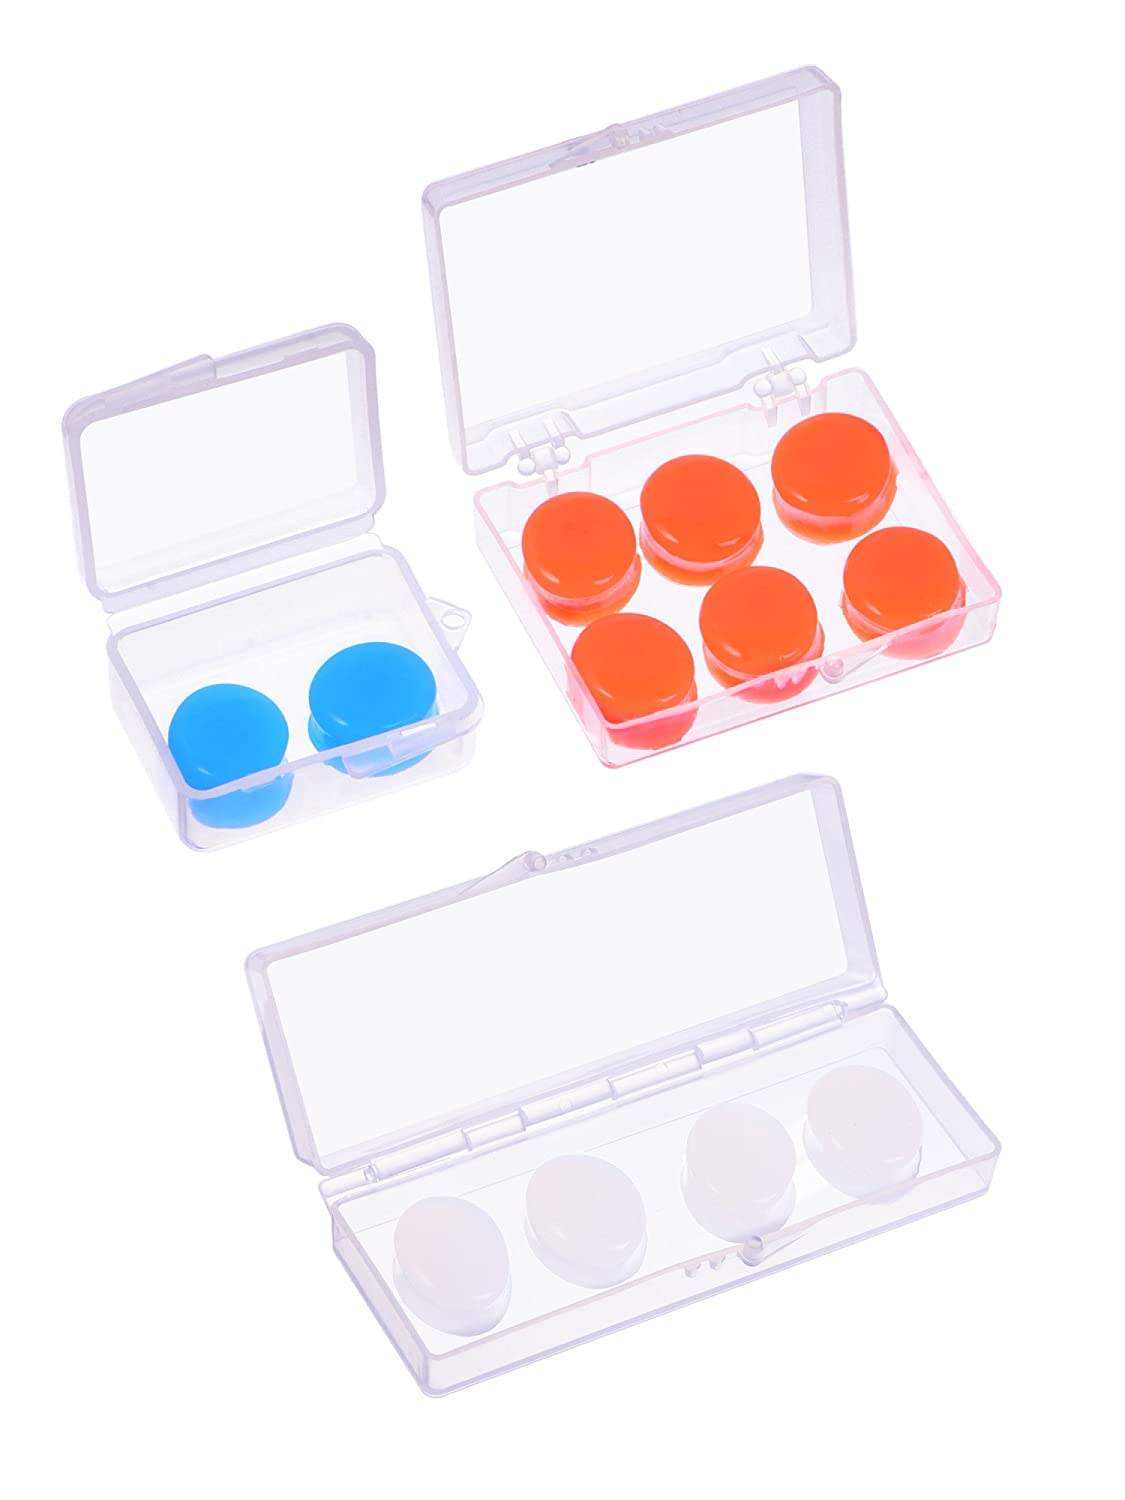 Silicone Putty Ear Plugs Soft Protective Ear Plugs Earplugs Bulk for Sleeping Swimming, Blue and White Orange 12 Pairs in 5 Sets